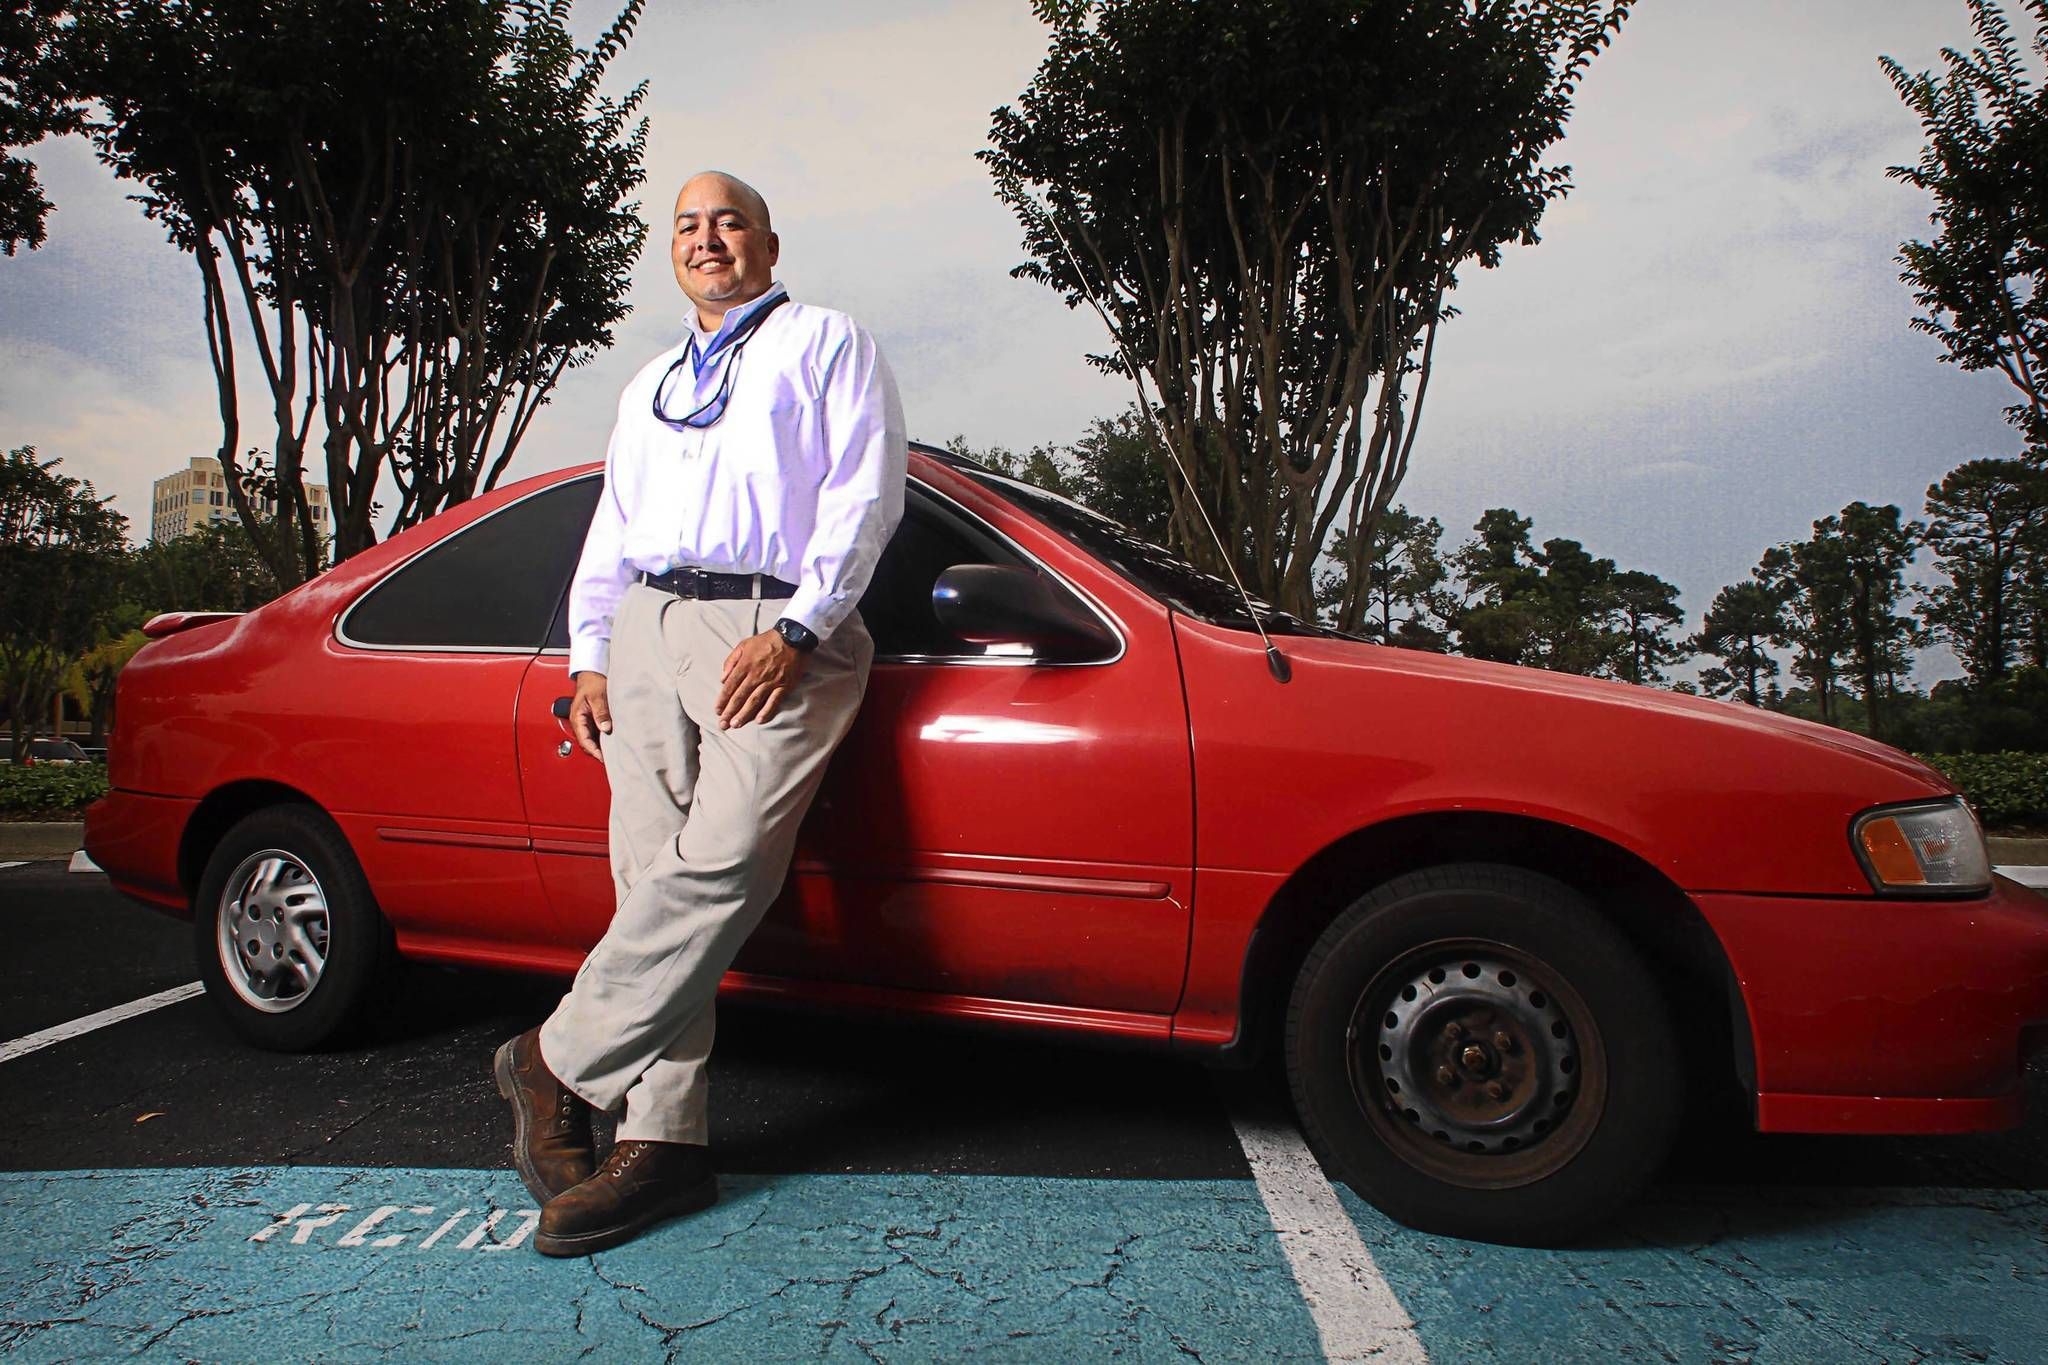 Drivers holding onto older cars - tribunedigital-orlandosentinel